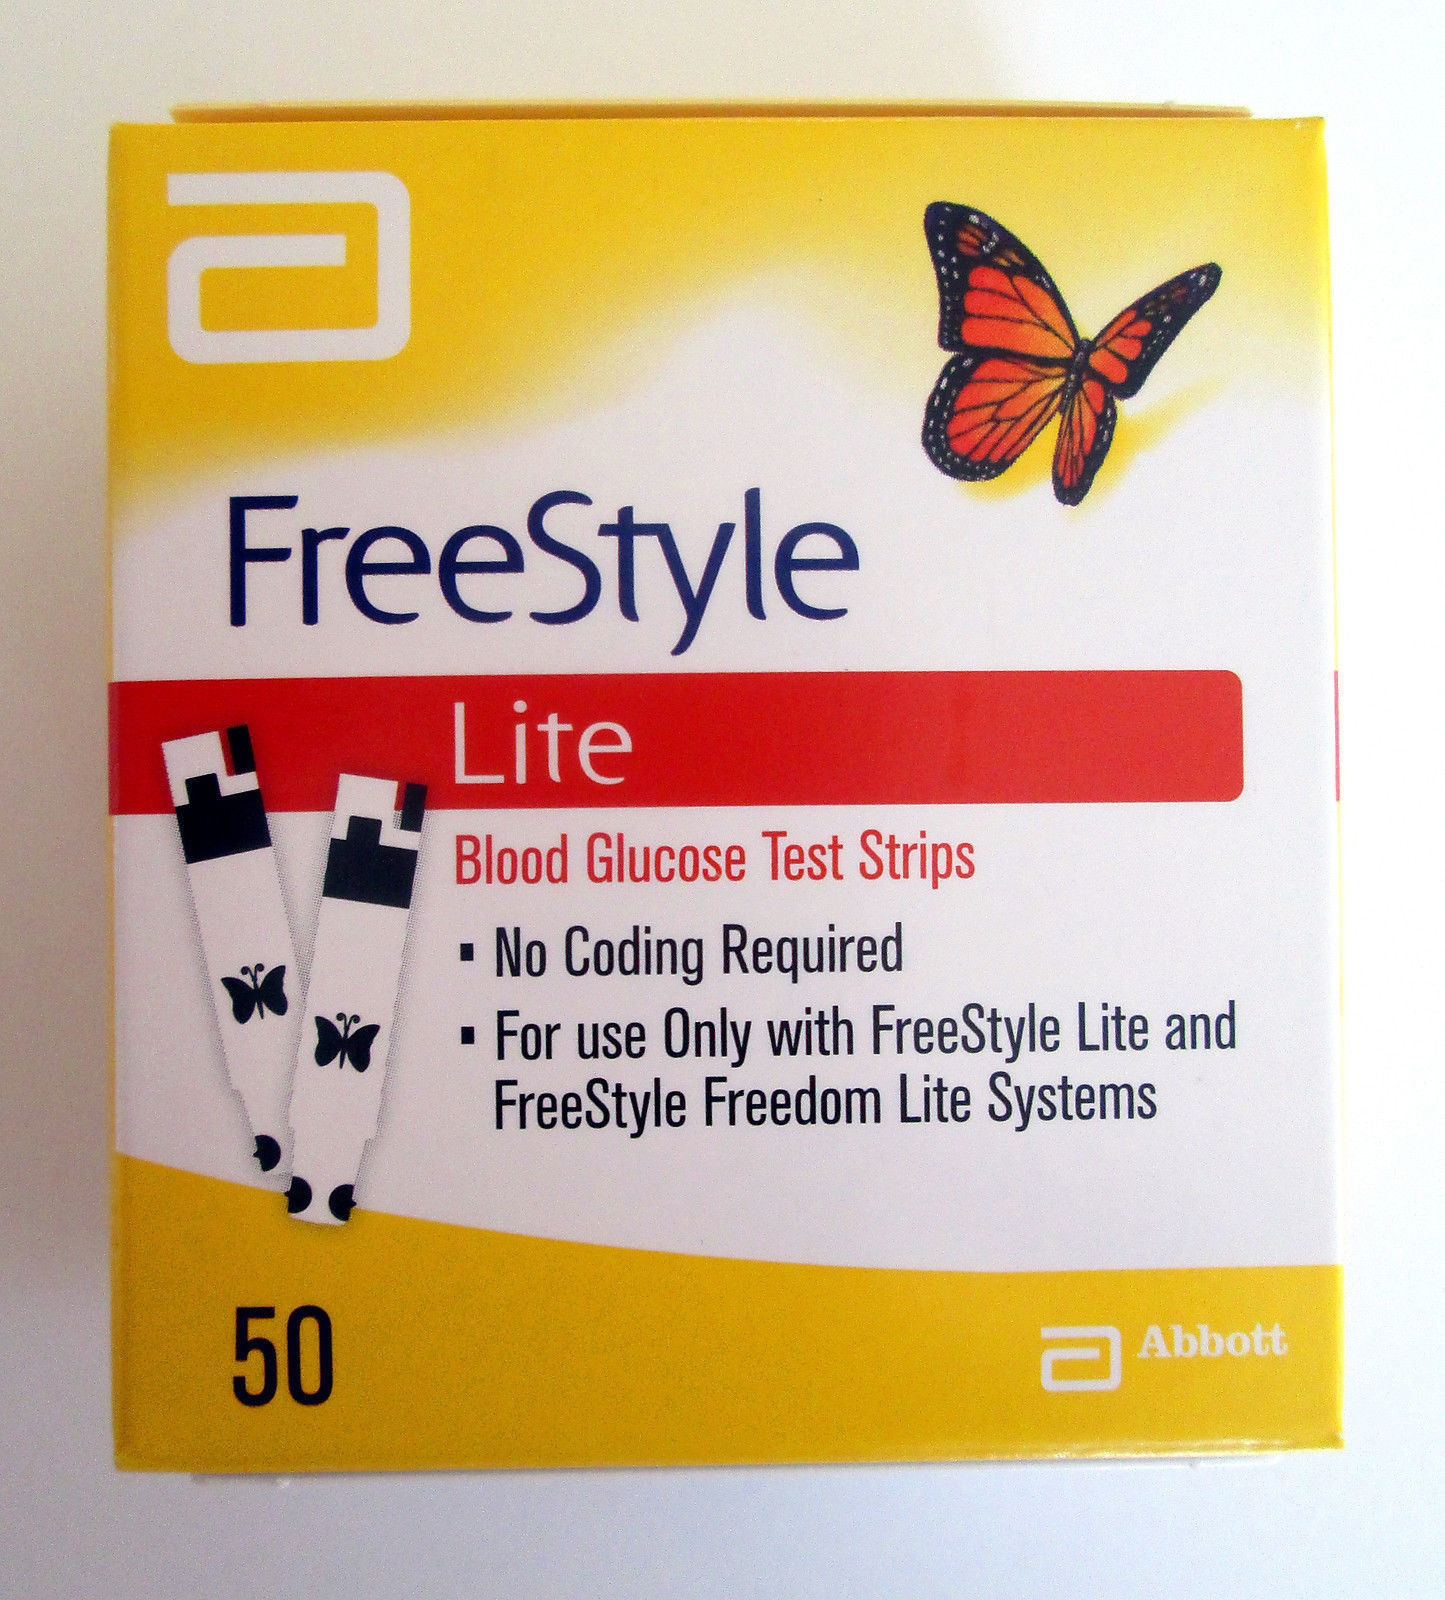 Abbott Announces Voluntary Recall of FreeStyle and FreeStyle Flash Blood  Glucose Meters. still be used with FreeStyle test strips.